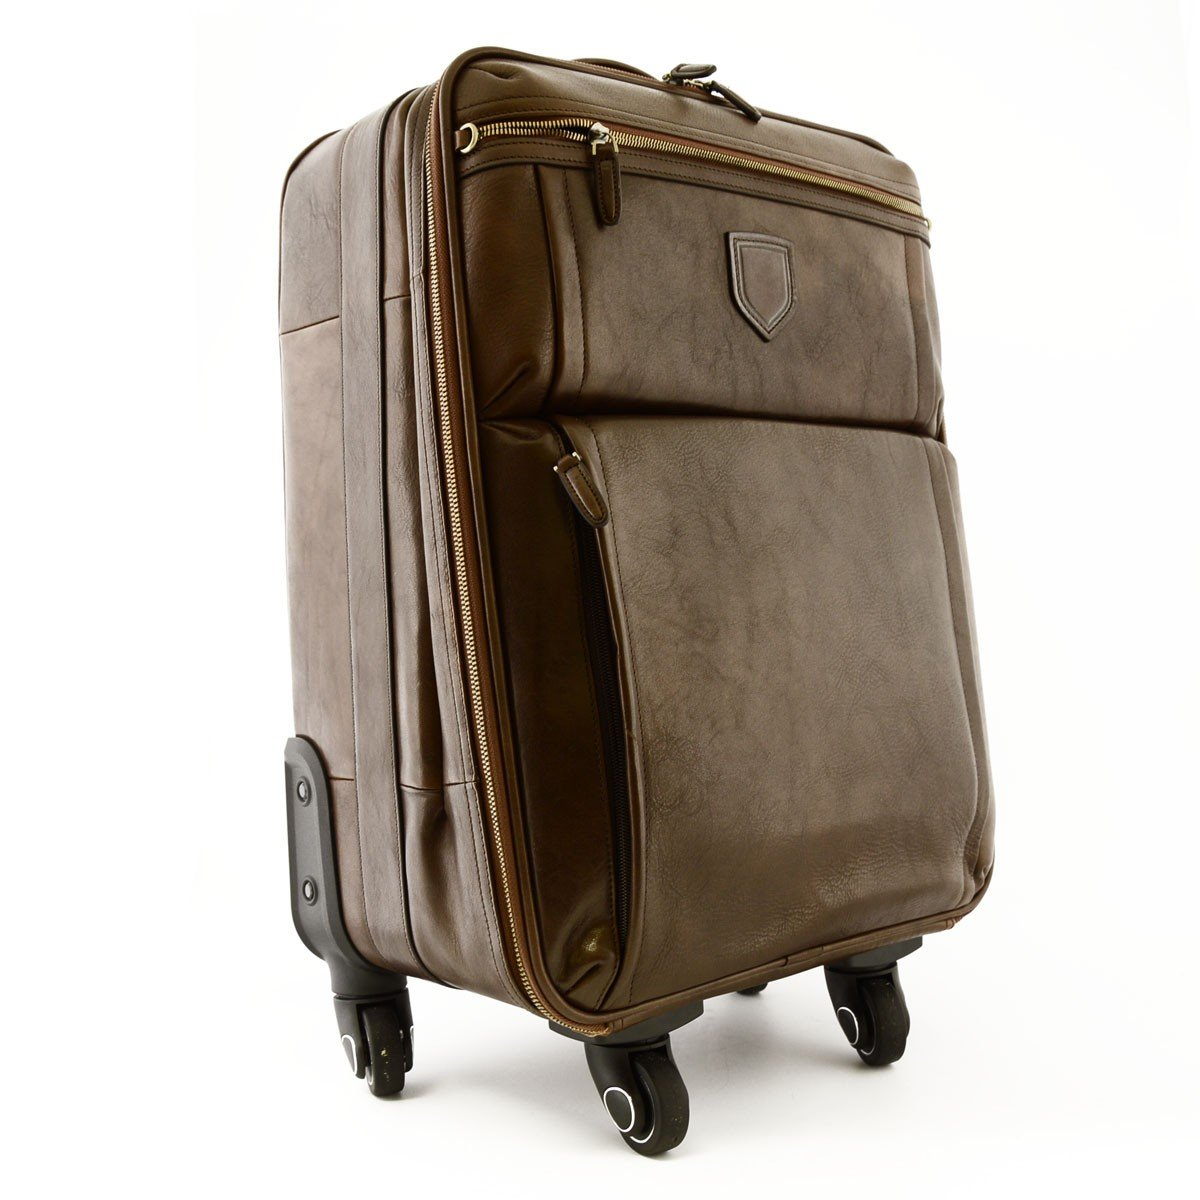 Color : Pink Lcslj 24 inch Trolley case Unisex Suitcase Universal Wheel Luggage Suitcase